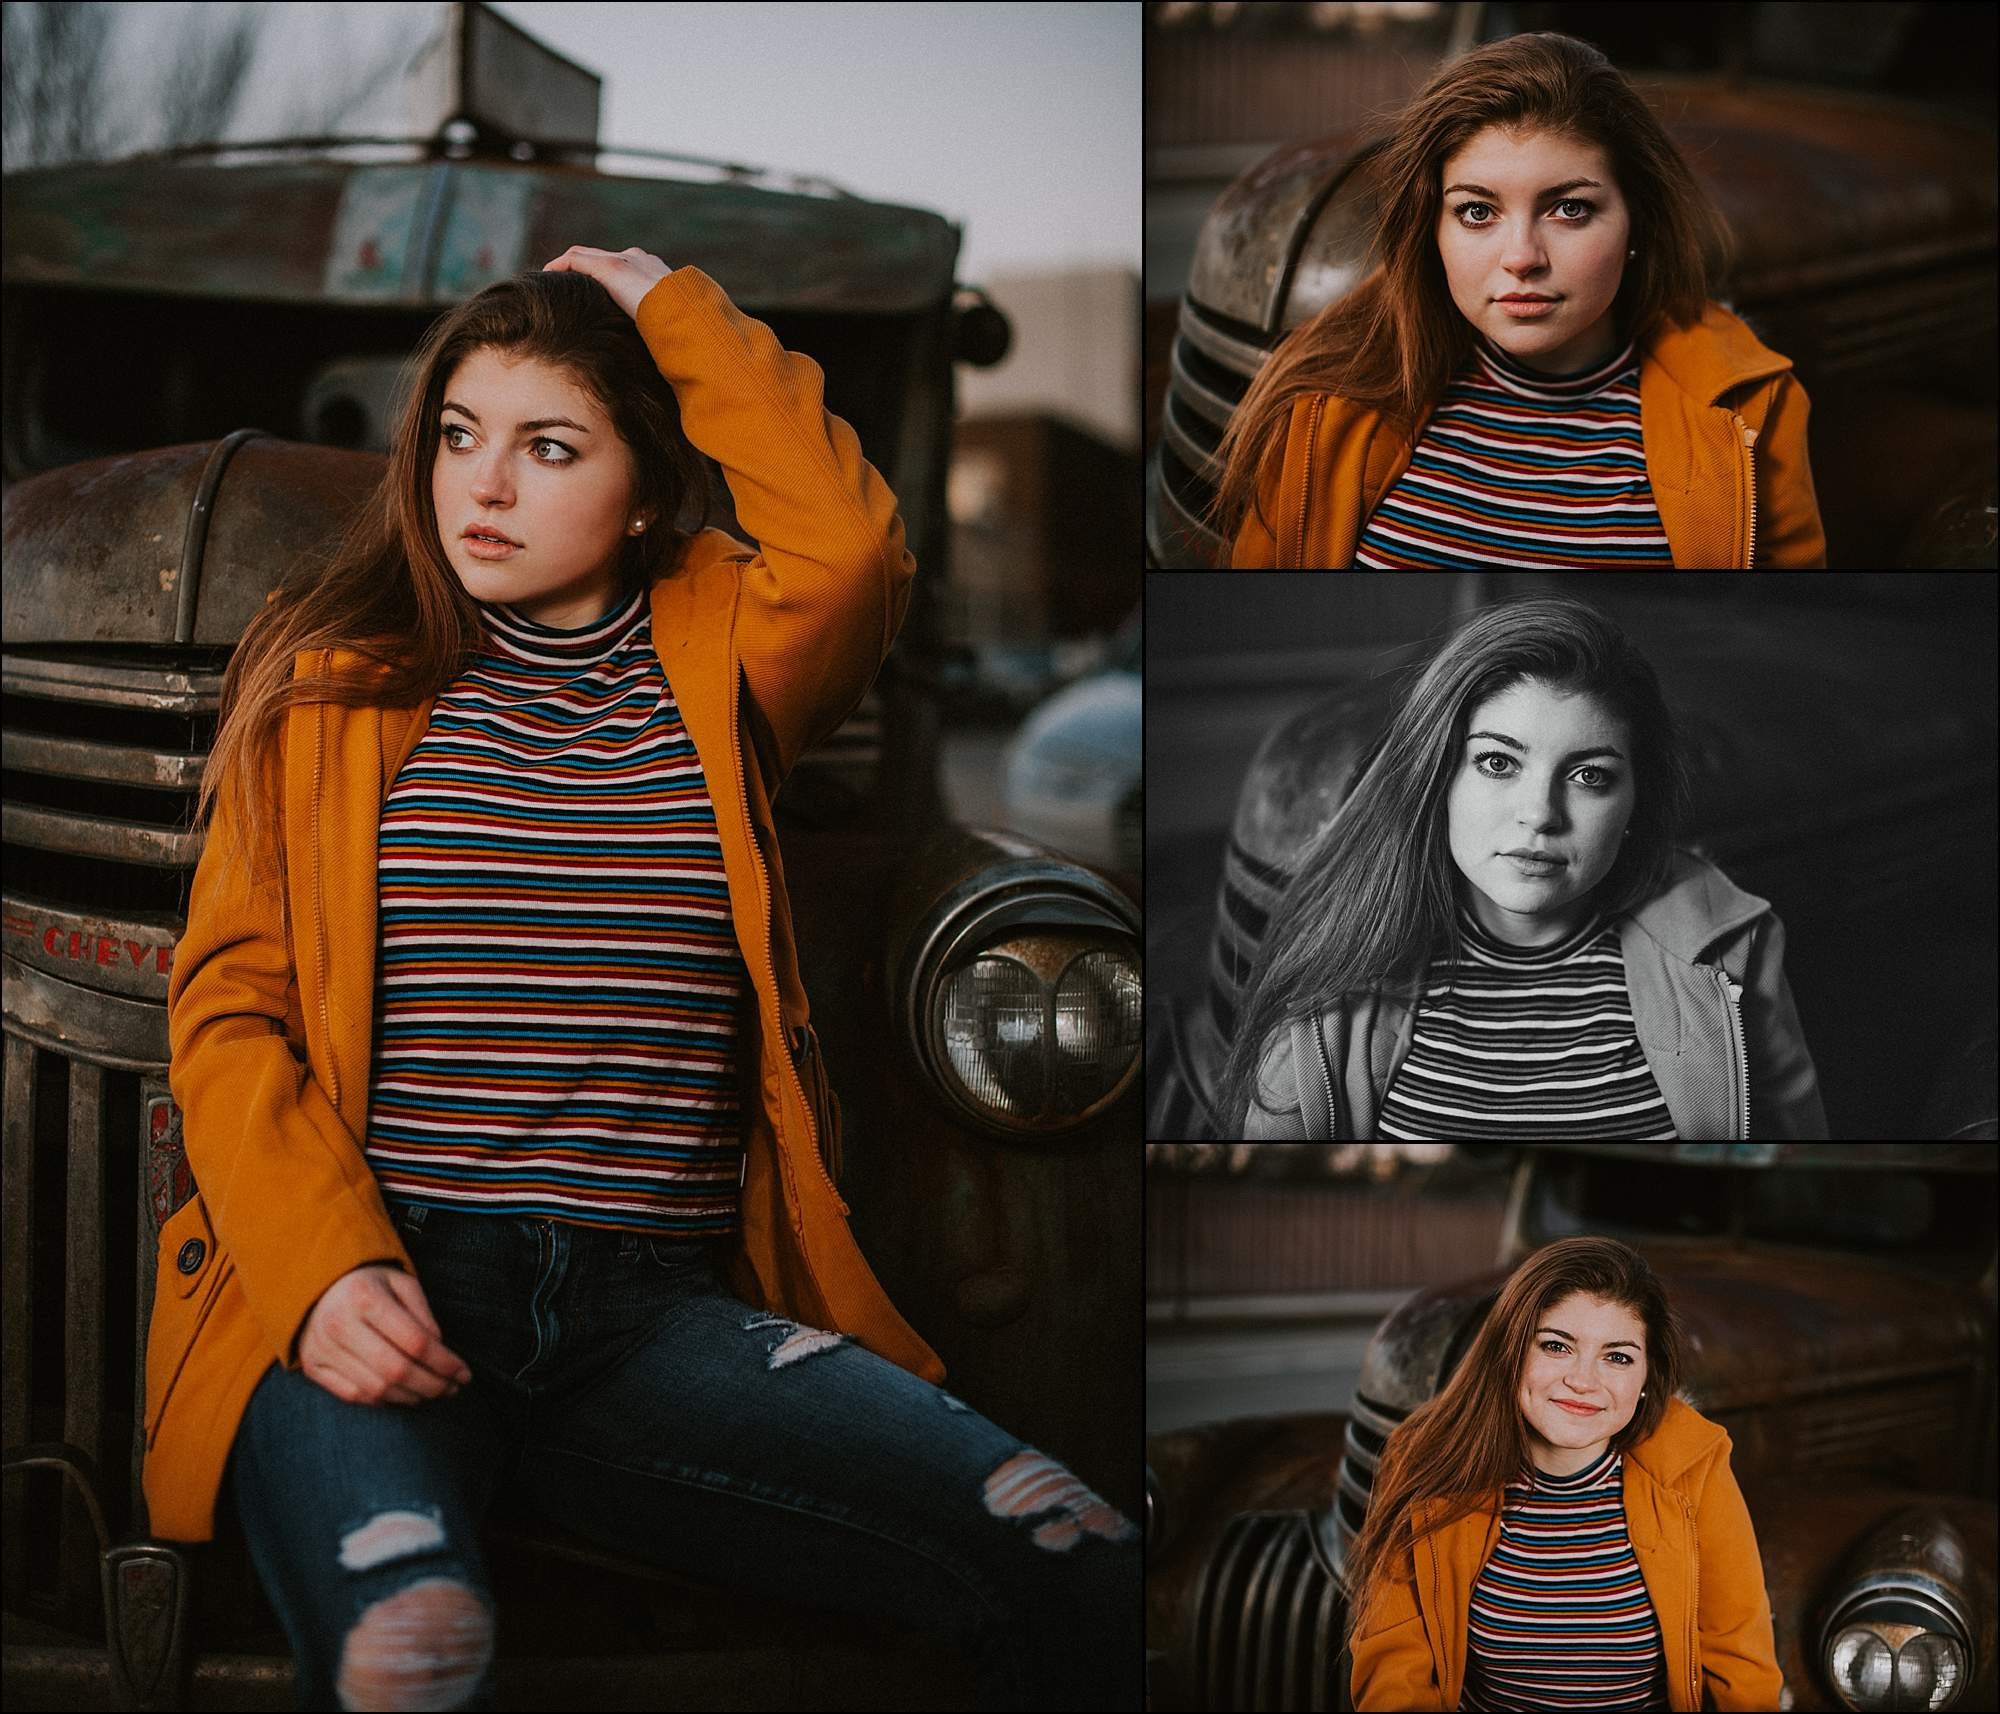 young-woman-portrait-vintage-truck-orange